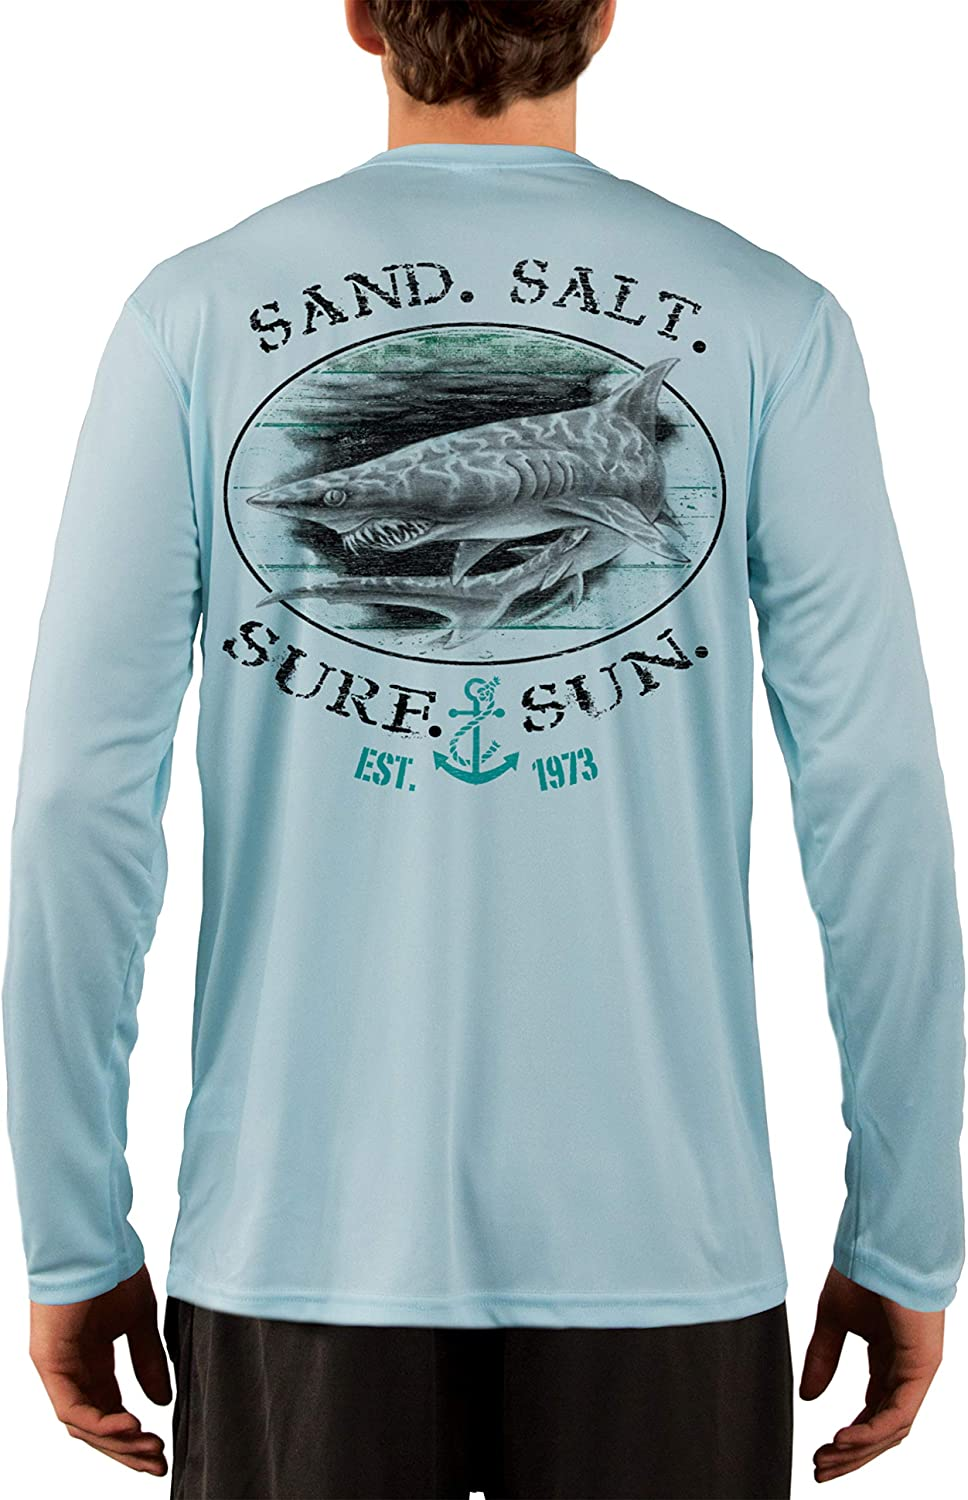 SAND.SALT.SURF.SUN. Shark Men's UPF 50+ UV Sun Protection Performance Long Sleeve T-Shirt